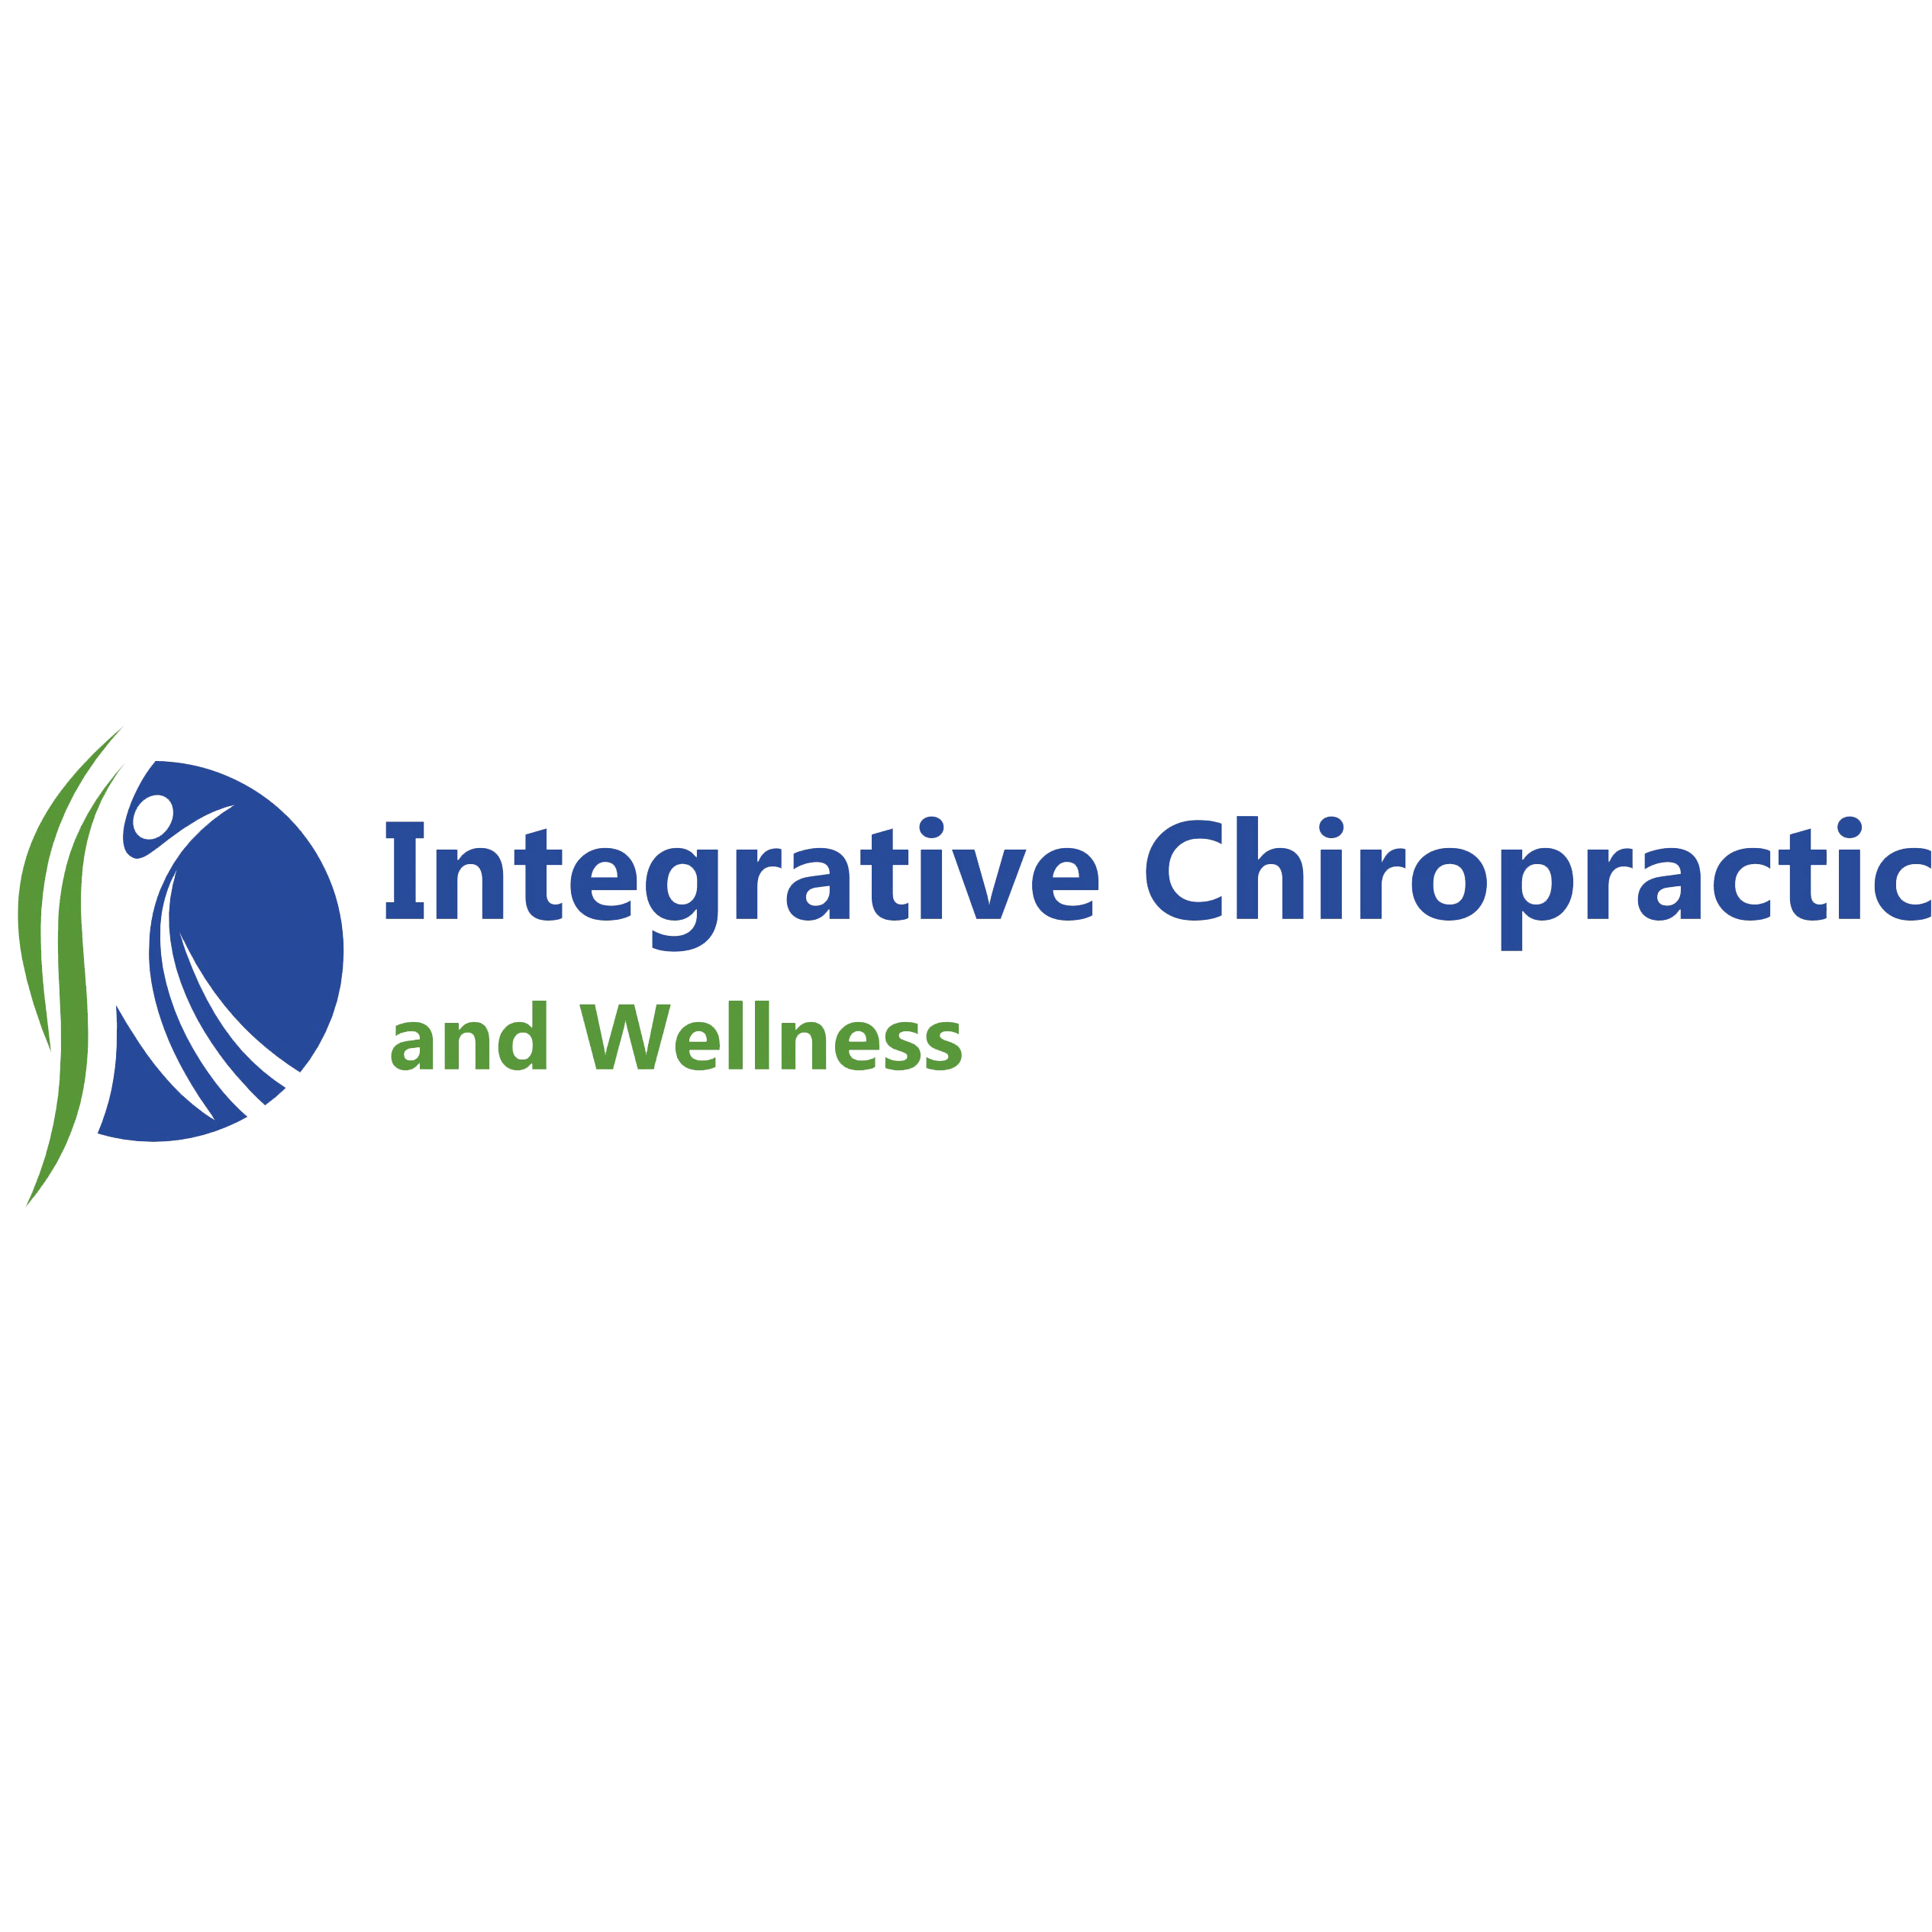 Integrative Chiropractic and Wellness